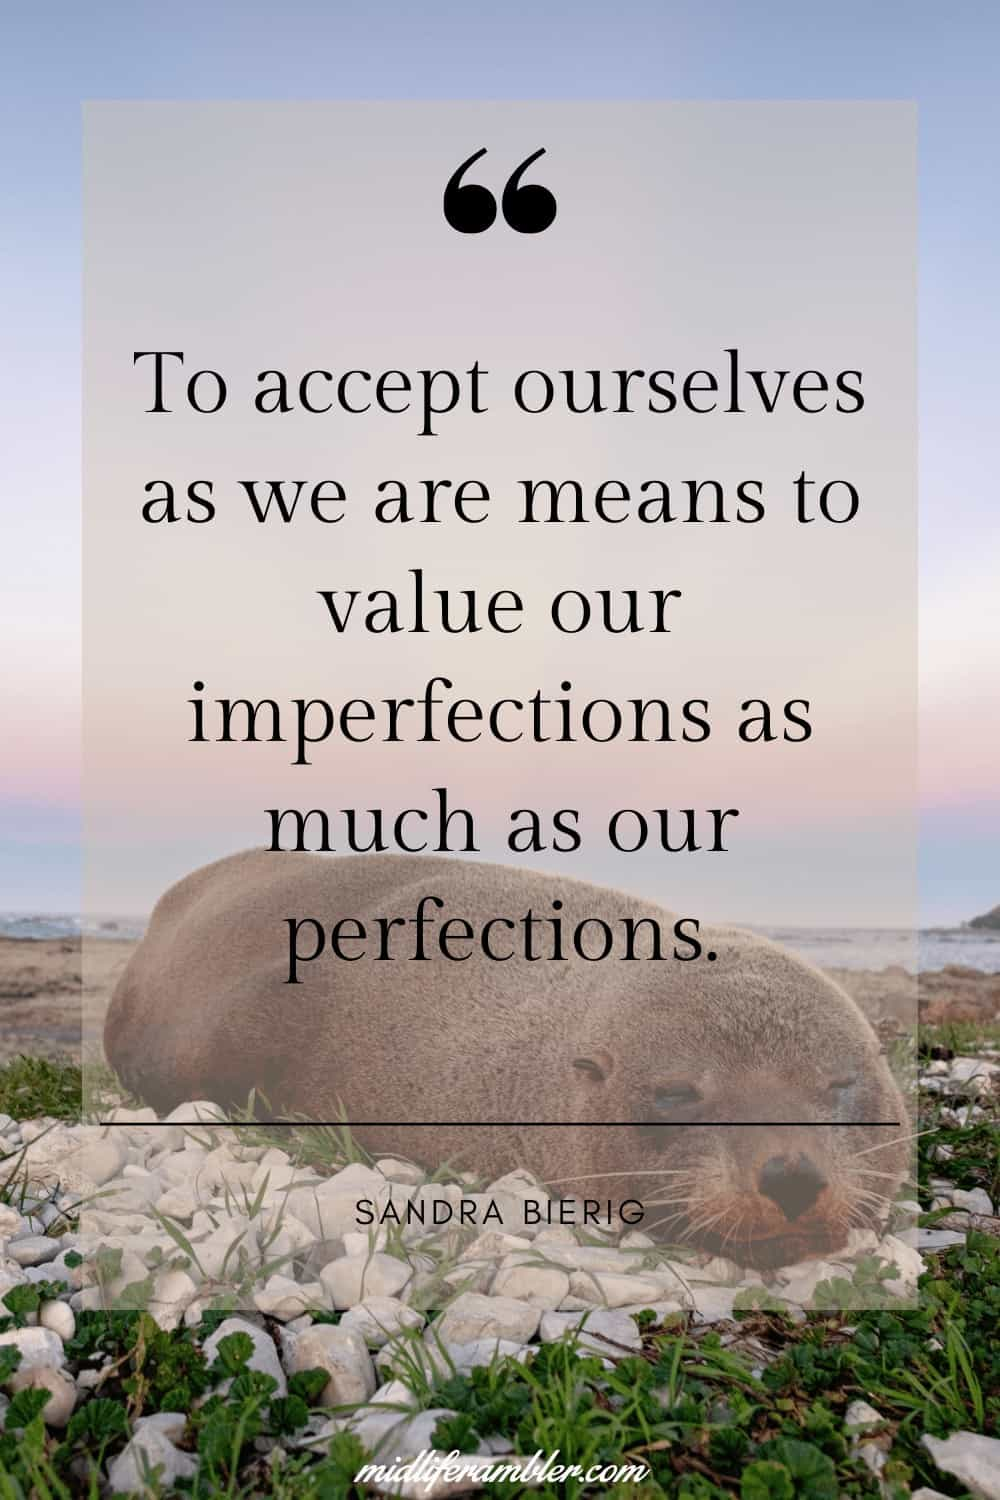 50 Self-Compassion Quotes and Affirmations to Help You Learn to Love and Accept Yourself - To accept ourselves as we are means to value our imperfections as much as our perfections. – Sandra Bierig